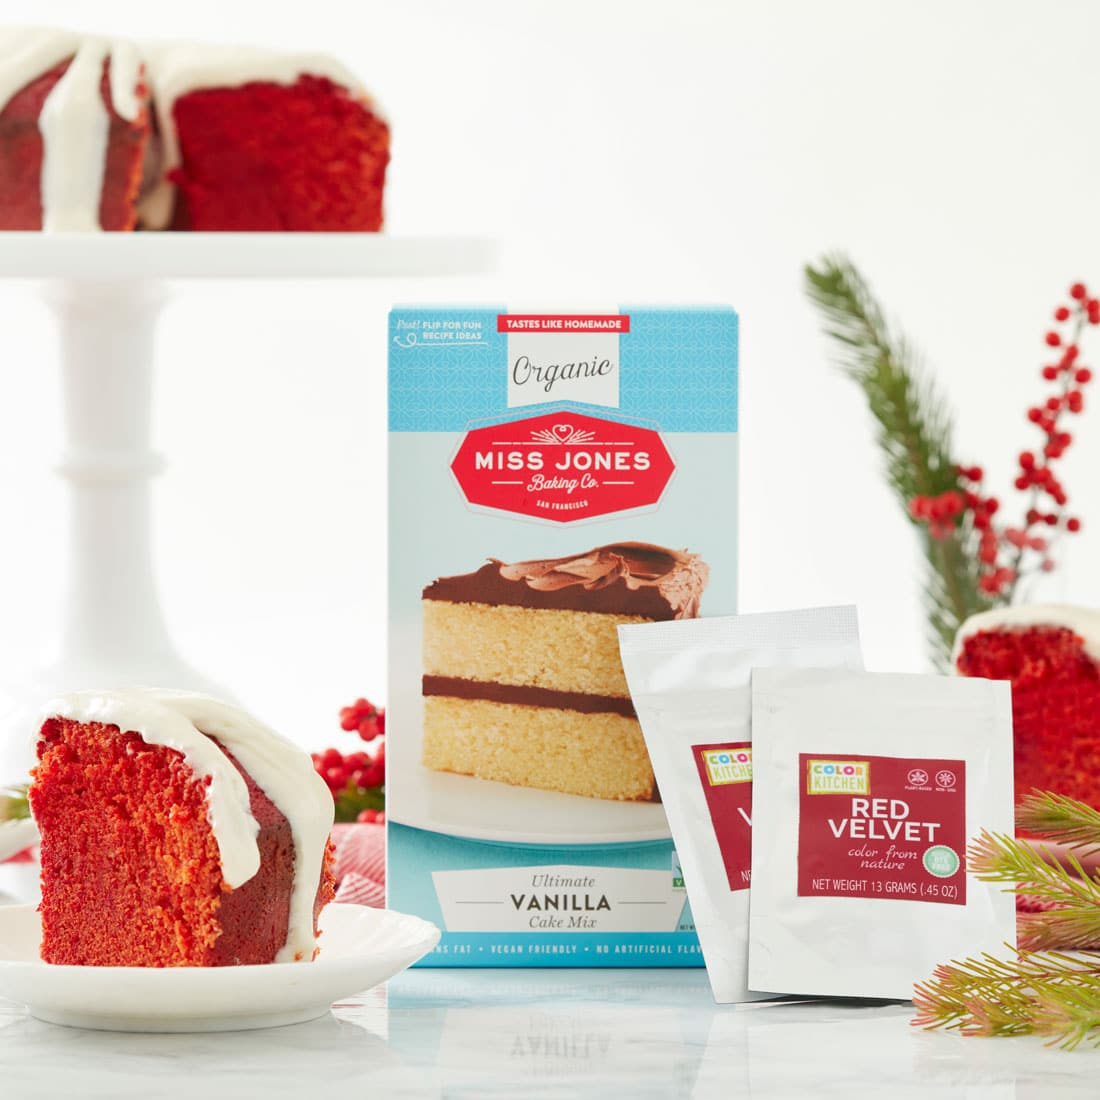 Image of Miss Jones Baking Co's Red Velvet Bundt Cake and Cream Cheese Glaze slice and Miss Jones Baking Co Vanilla Organic Cake Mix in the background